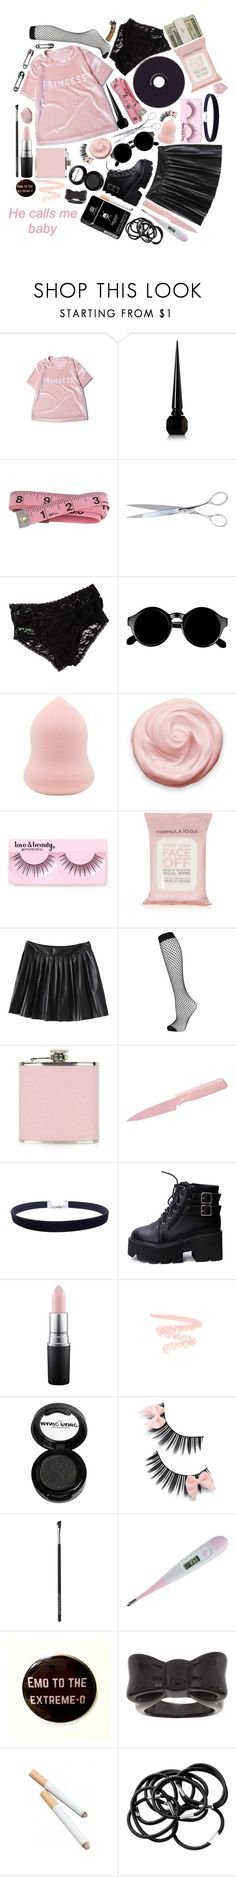 """""""▪ We're Broken People ▪"""" by xx-pretty-boy-xx ❤ liked on Polyvore featuring WithChic, Christian Louboutin, El Casco, Honeydew Intimates, Retrò, Forever 21, Topshop, Kuhn Rikon, Jack Spade and MAC Cosmetics"""